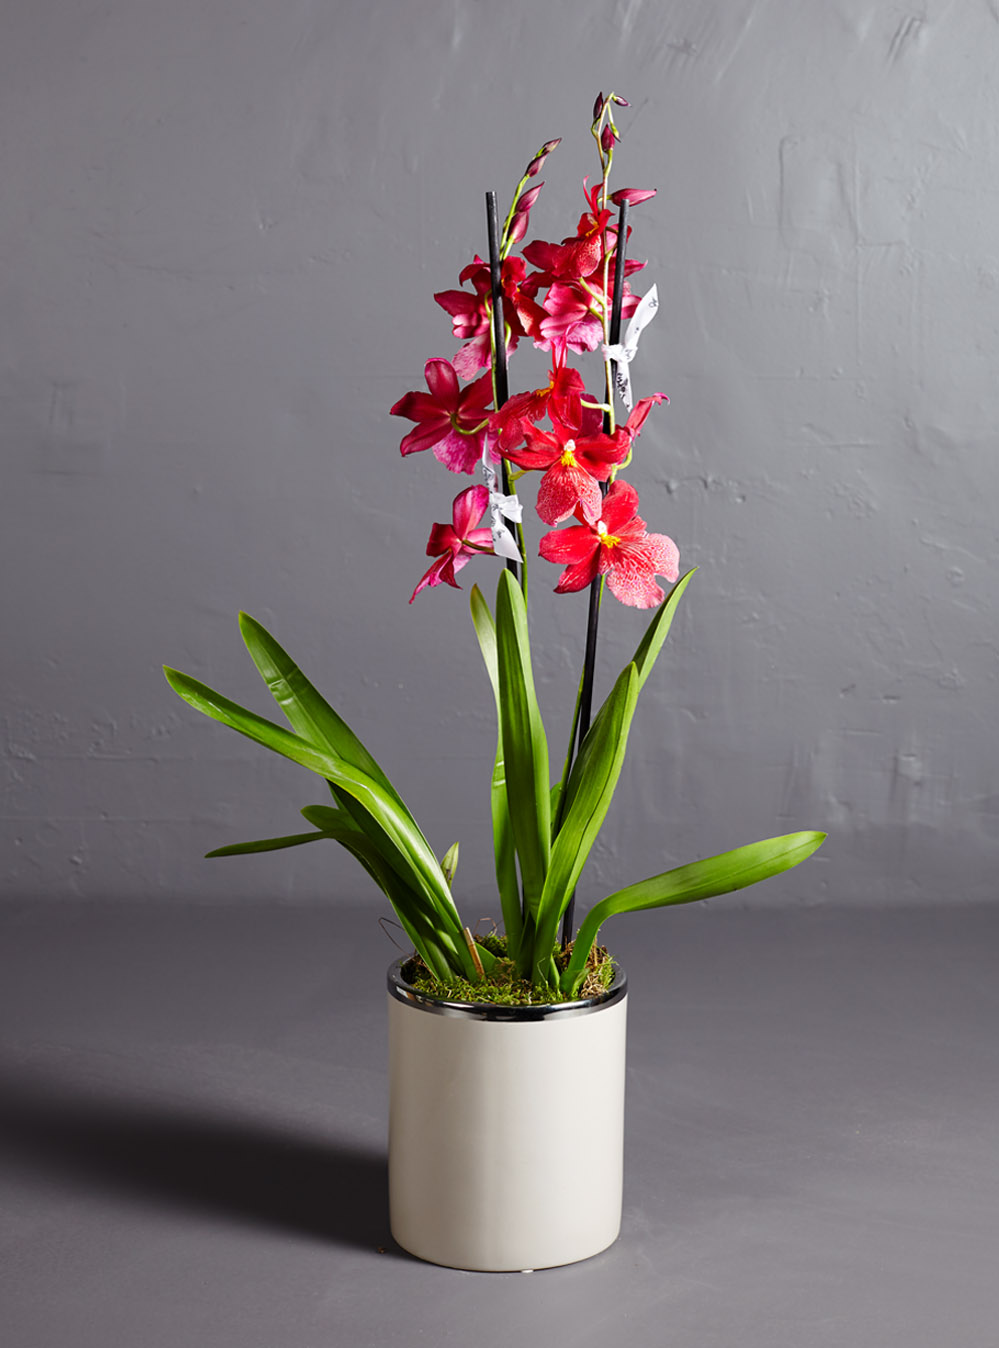 Red Oncidium Orchid Larry Walshe Floral Design